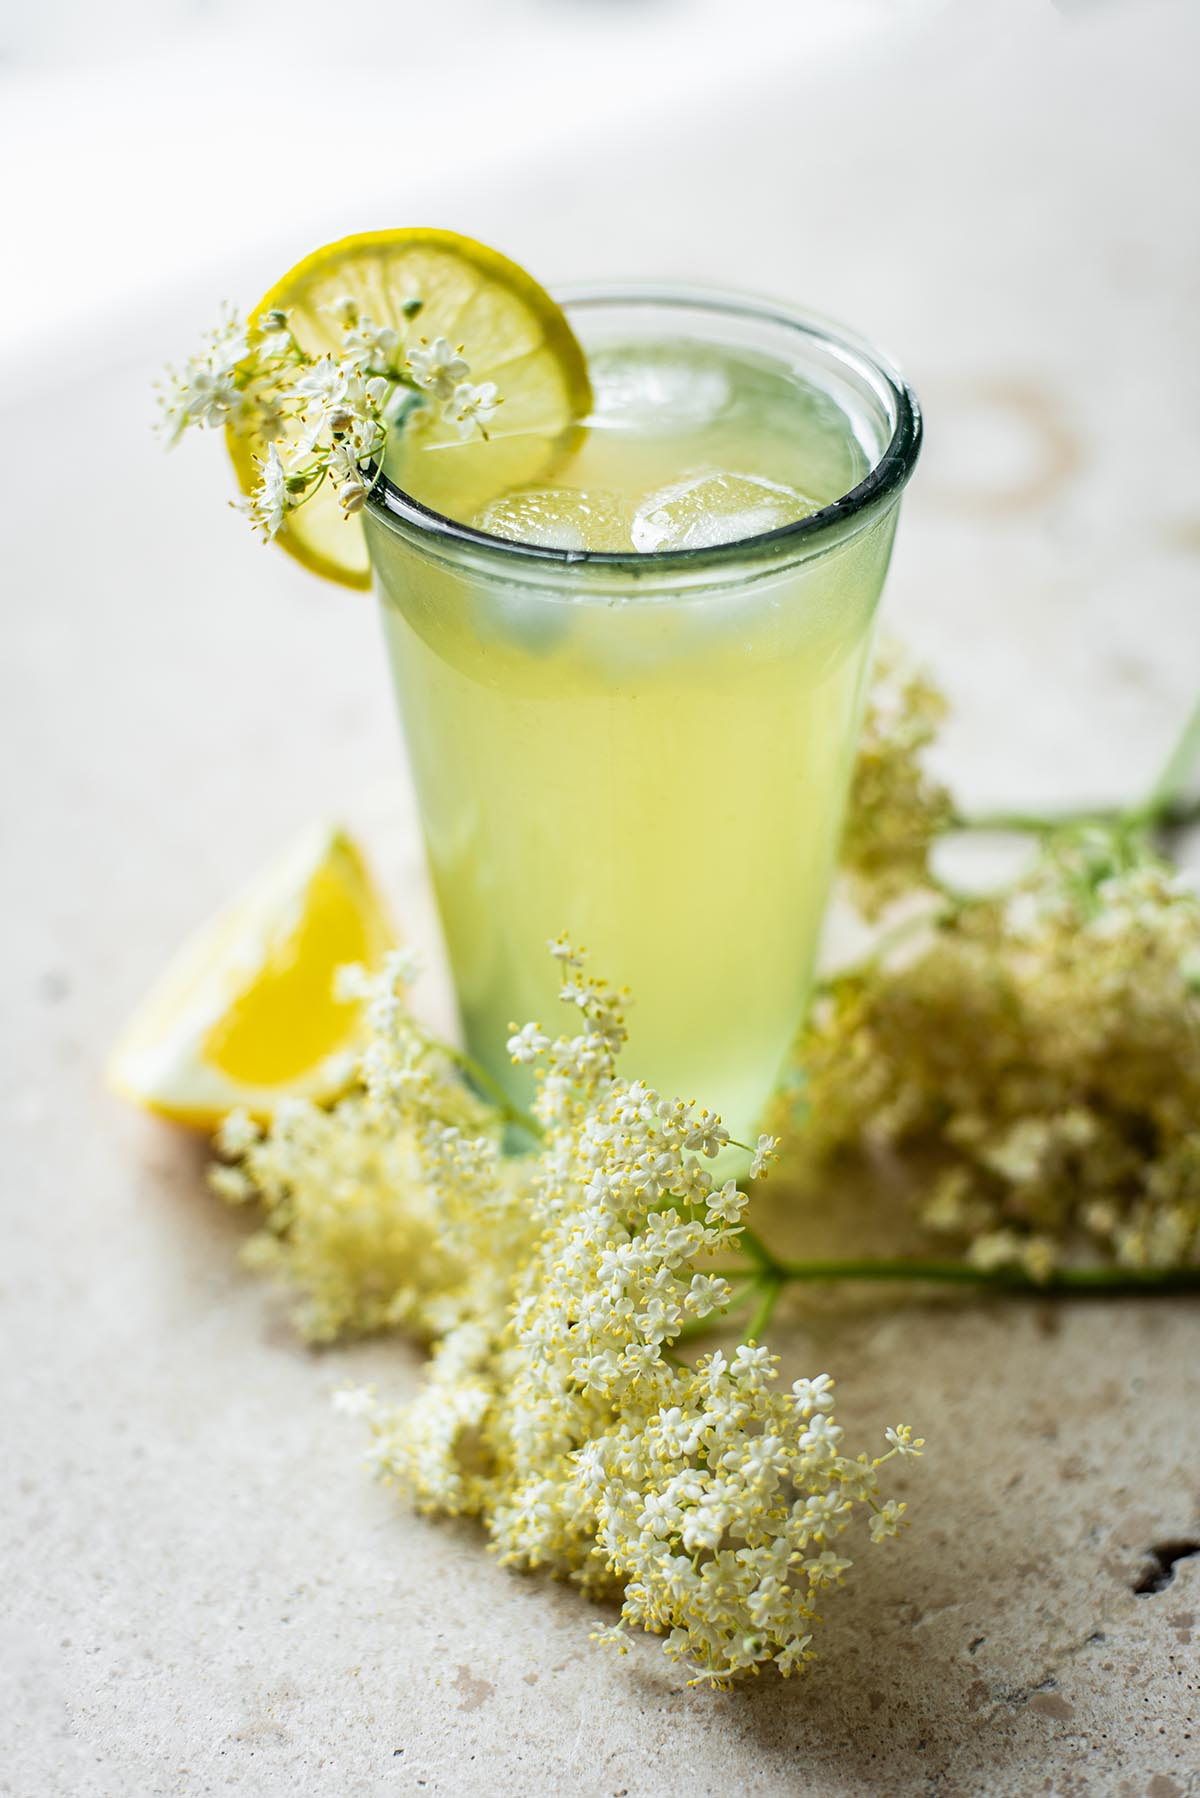 A glass of lemonade with elderflower and ice.